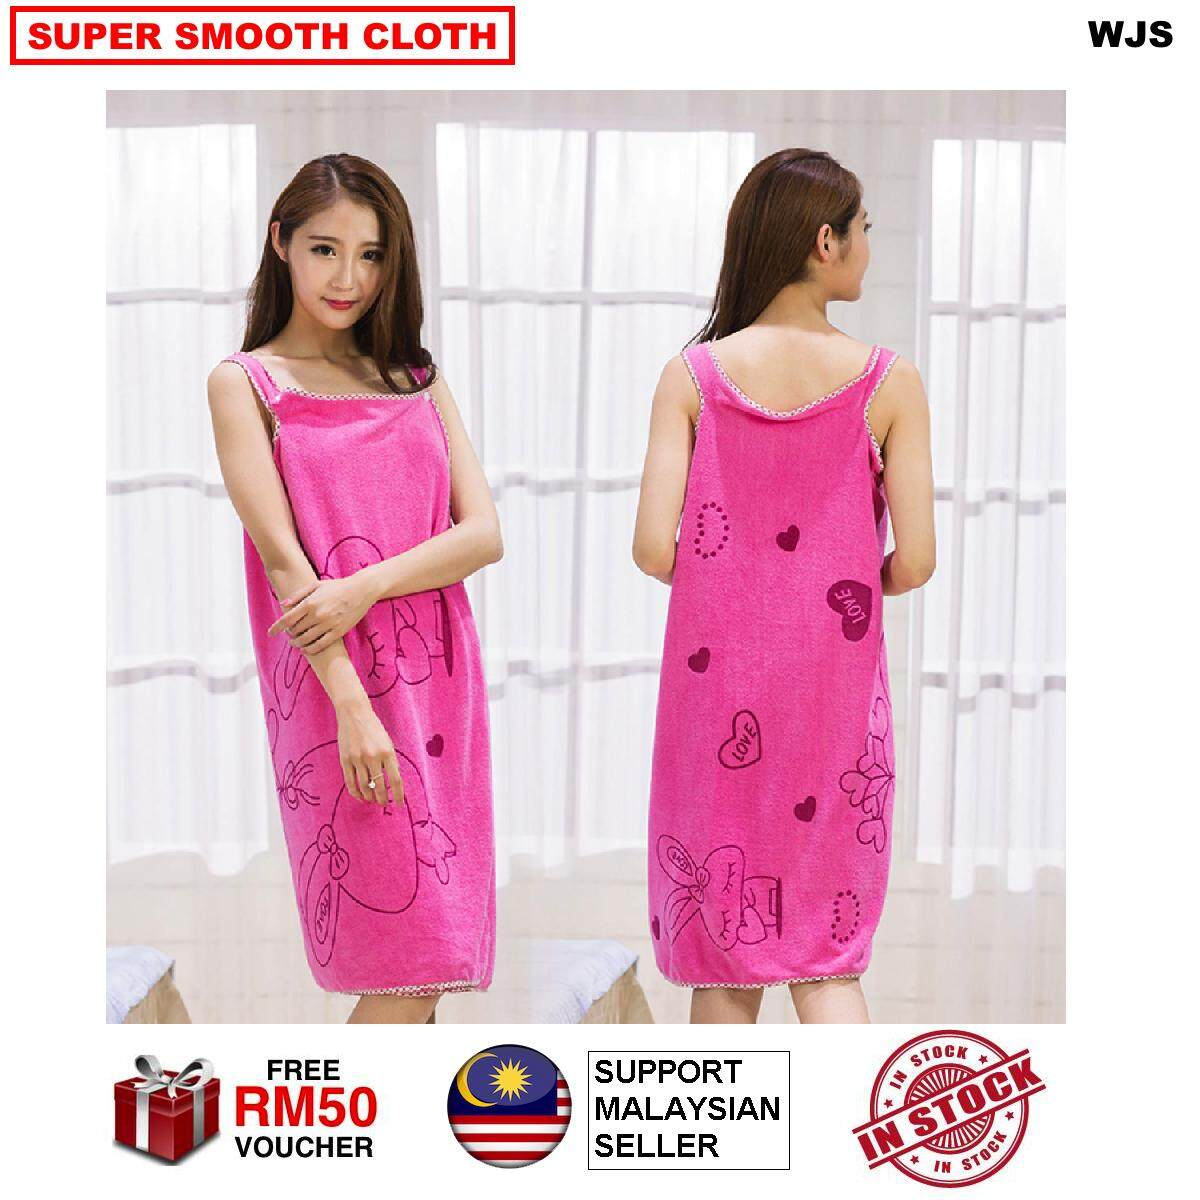 Home Bathrobes - Buy Home Bathrobes at Best Price in Malaysia   www ...